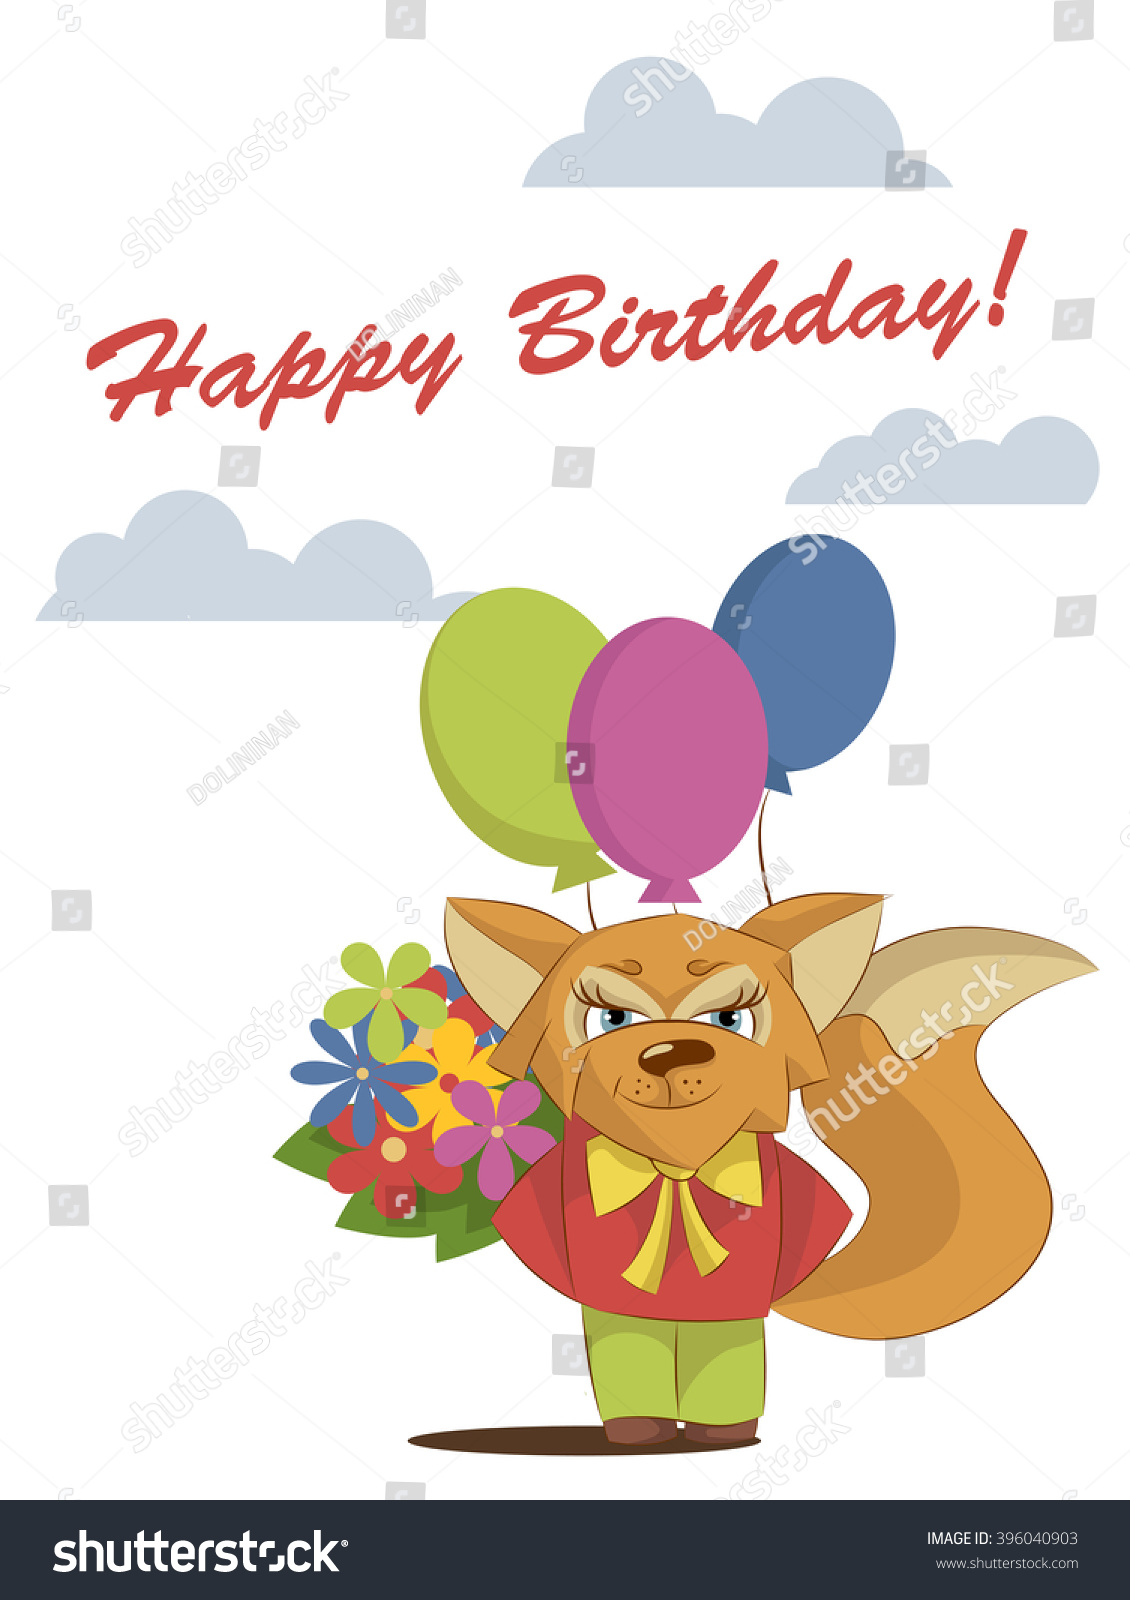 Greeting card happy birthday sly fox stock vector 396040903 greeting card happy birthday with a sly fox with flowers and balloons dhlflorist Choice Image